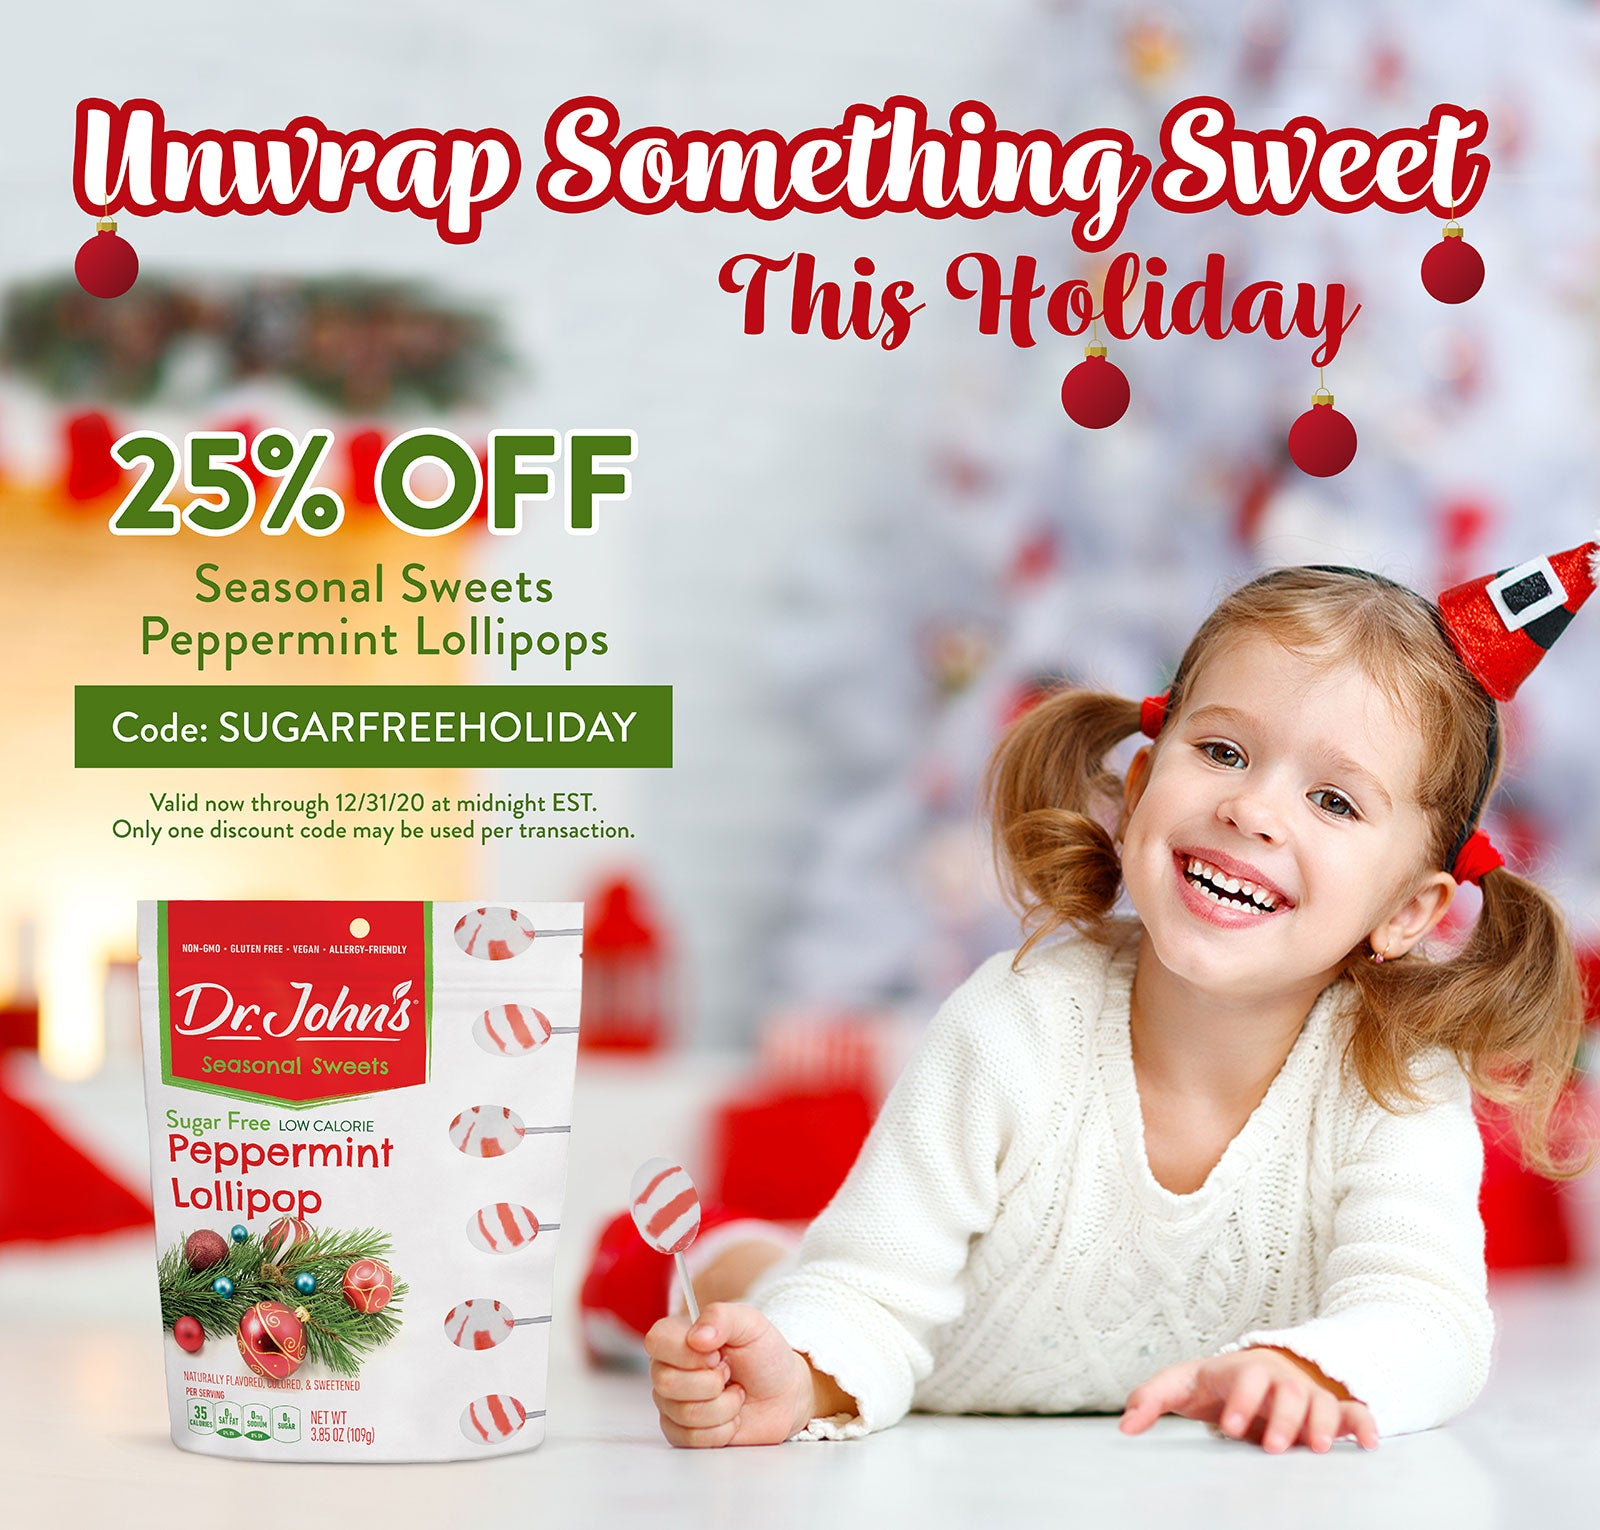 Take 25% Off Our Seasonal Sweets Peppermint Lollipops All December Long! Code: SUGARFREEHOLIDAY